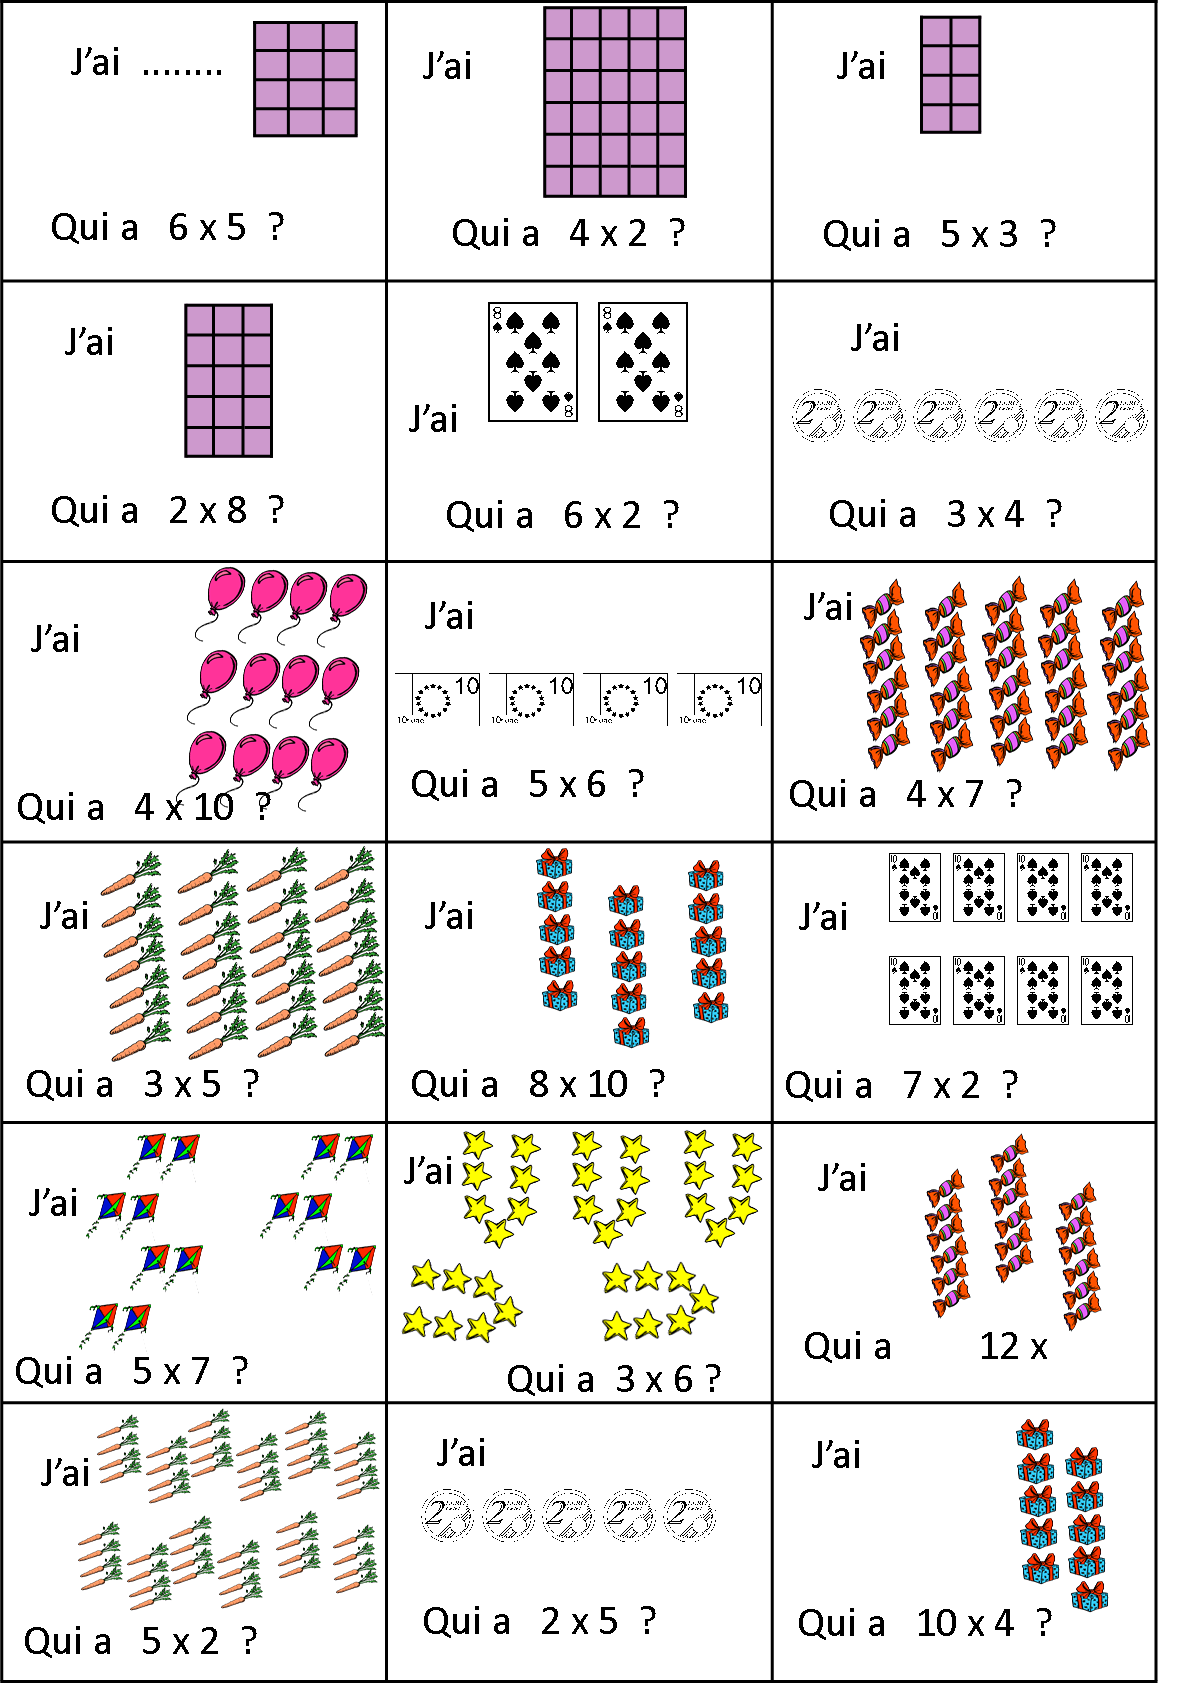 J 39 ai qui a multiplication repr sentation multplication division pinterest multiplication - Exercice ce1 table de multiplication ...